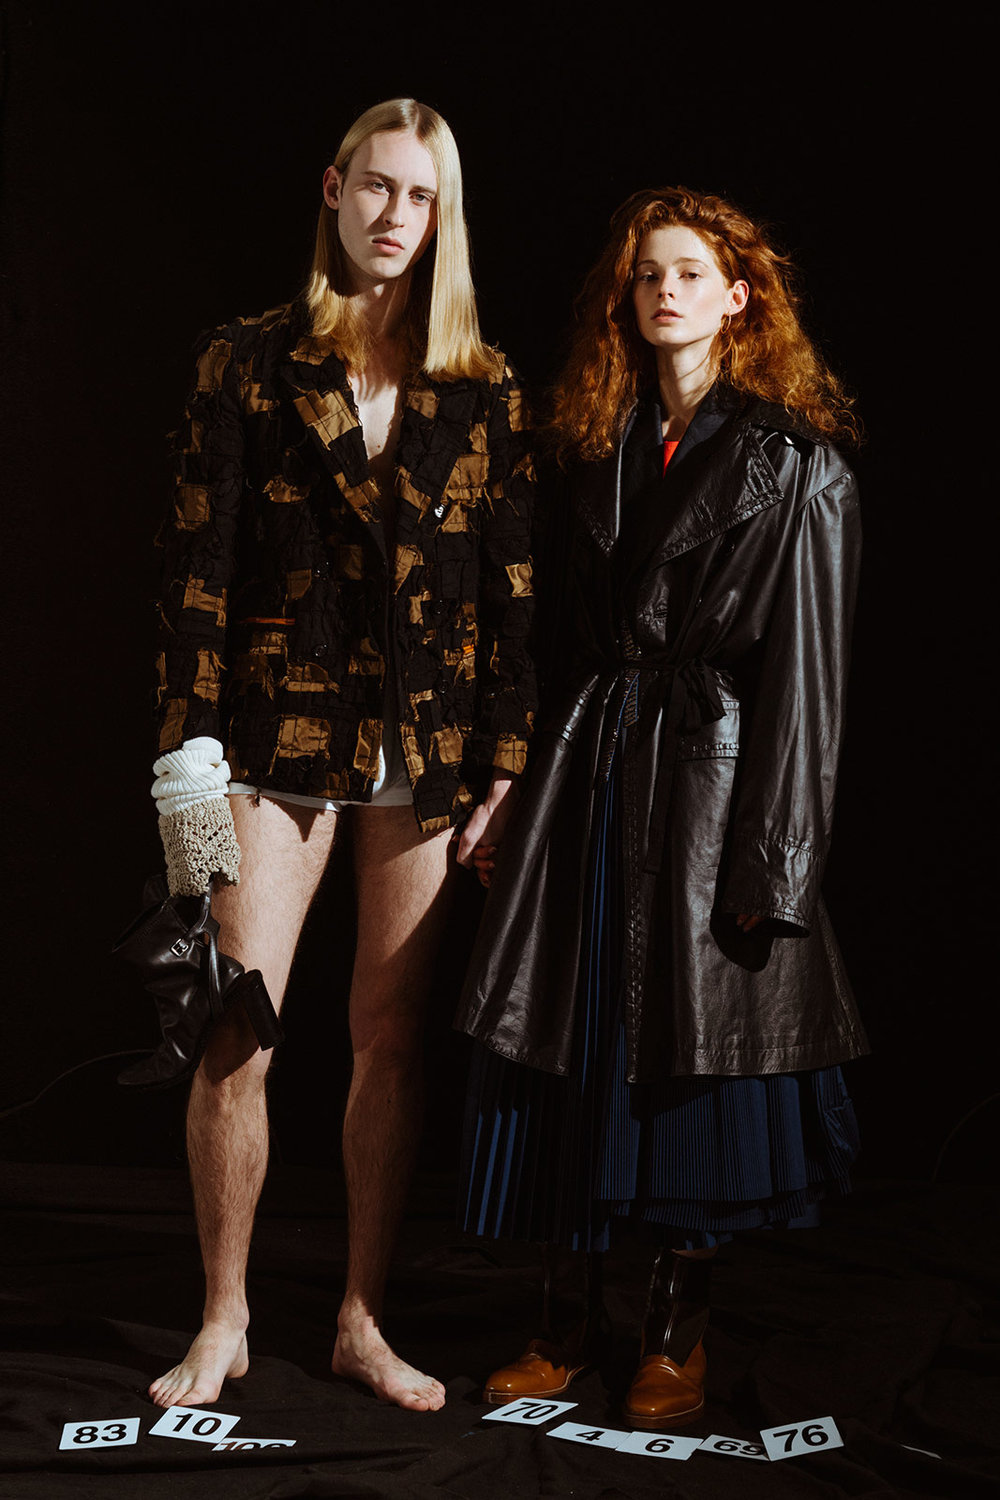 Loic wears jacket CHRISTIAN DADA, glove CONGREGATION, shoes MM6, underwear model's own. Clementine wears skirt and jacket TOGA ARCHIVES, dress MM6, coat ANN DEMEULEMEESTER, belt made by stylist, shoes WALTER VAN BEIRENDONCK.